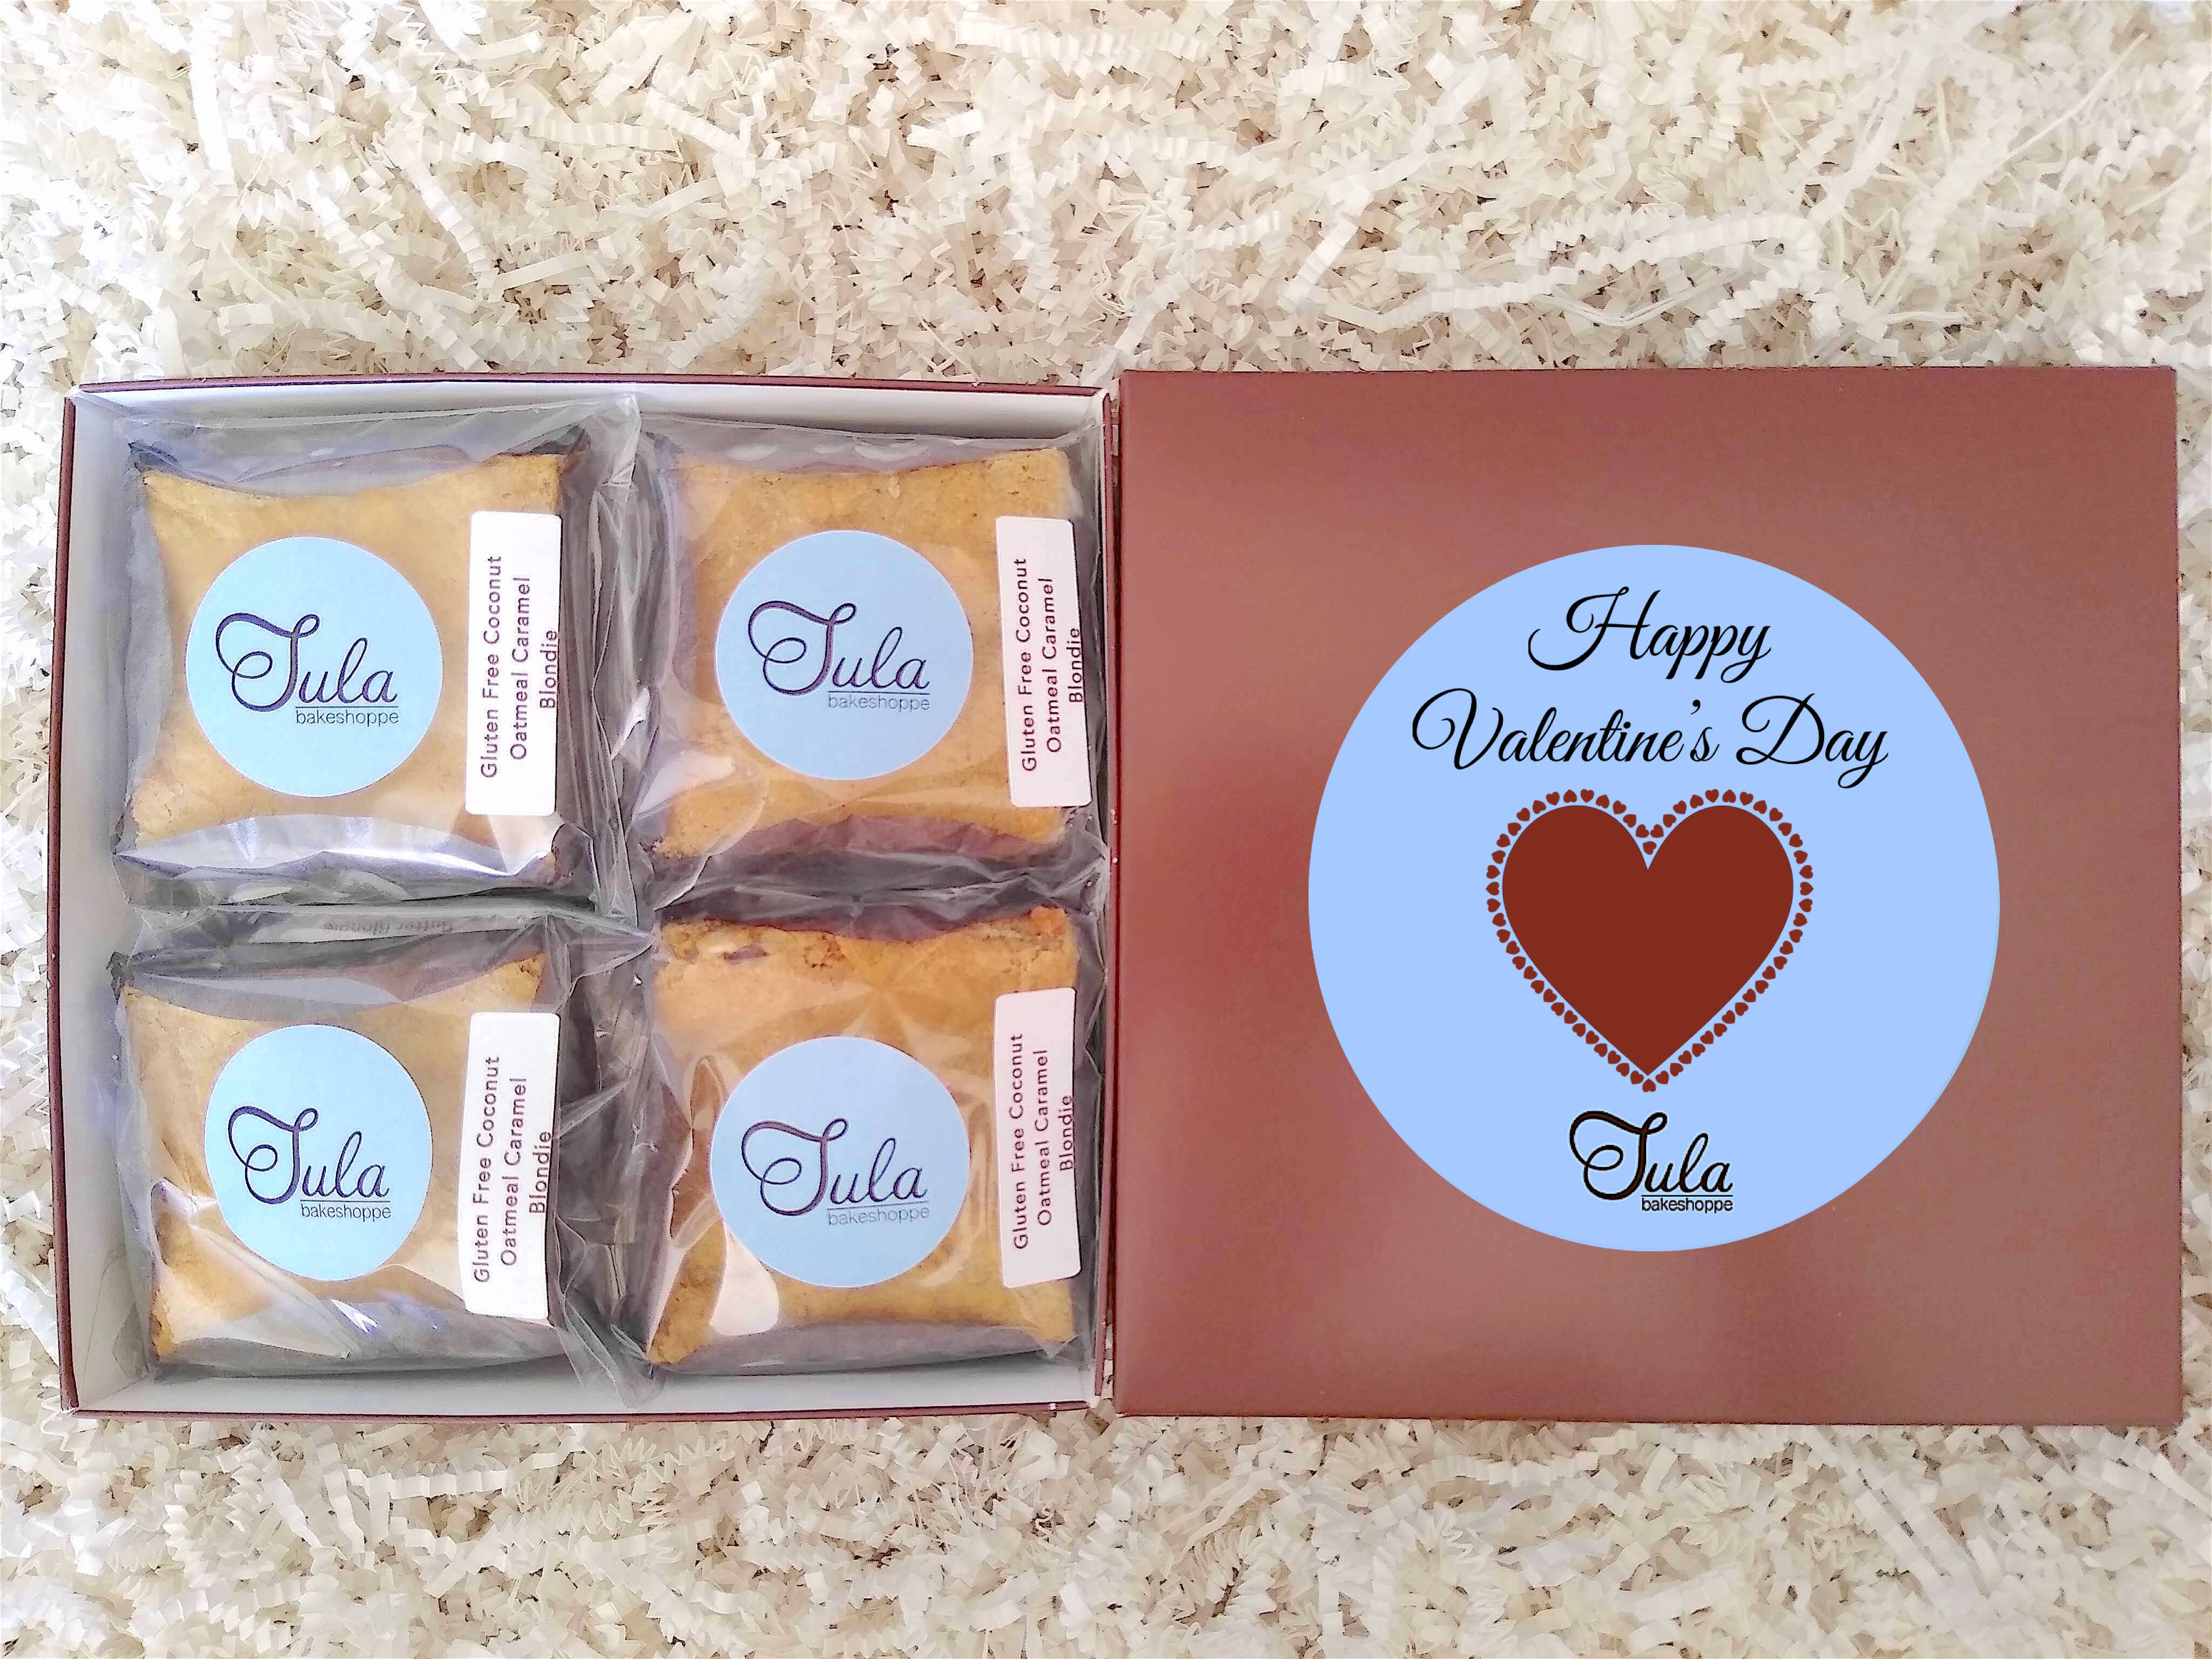 Gluten Free Valentines / Galentine's Day Coconut Oatmeal Caramel Blondie Gourmet Sweets Treat Gift Box